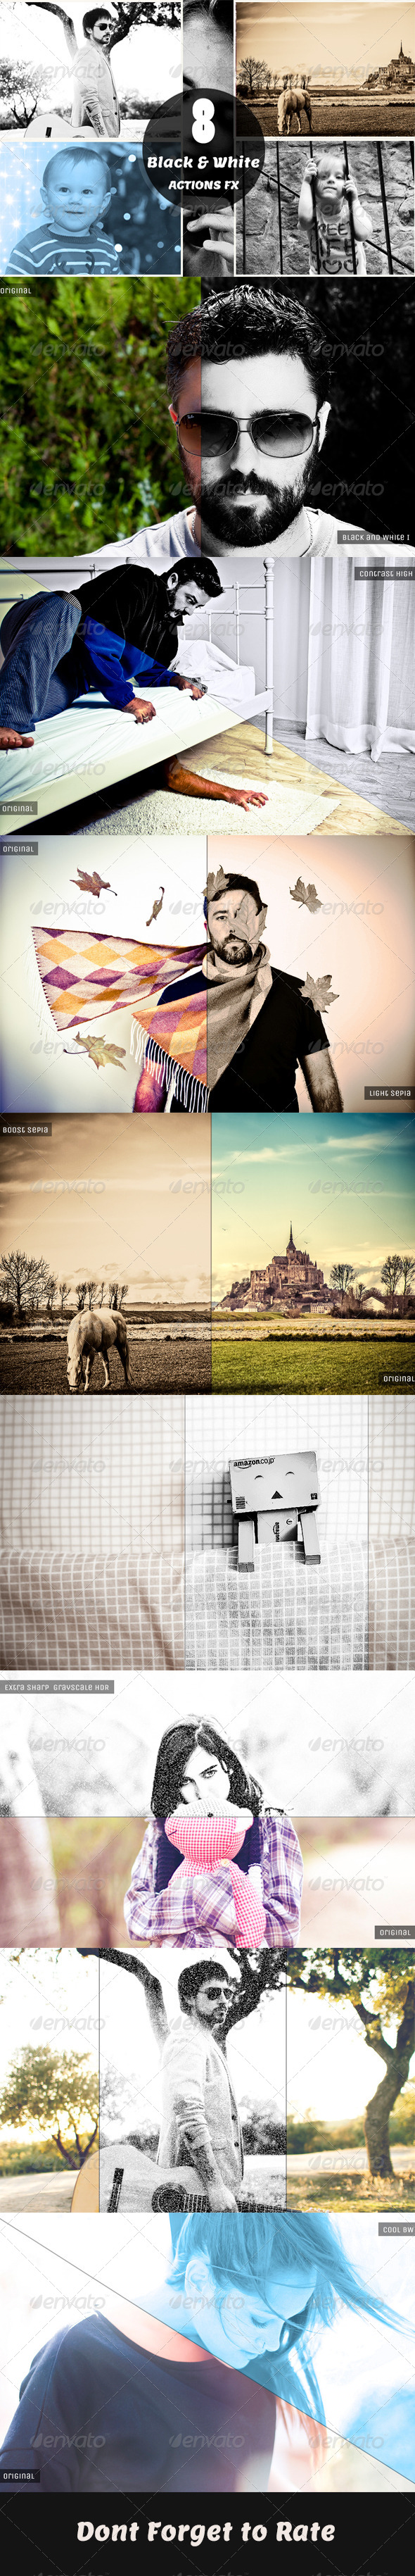 GraphicRiver B&W Actions FX 6387641